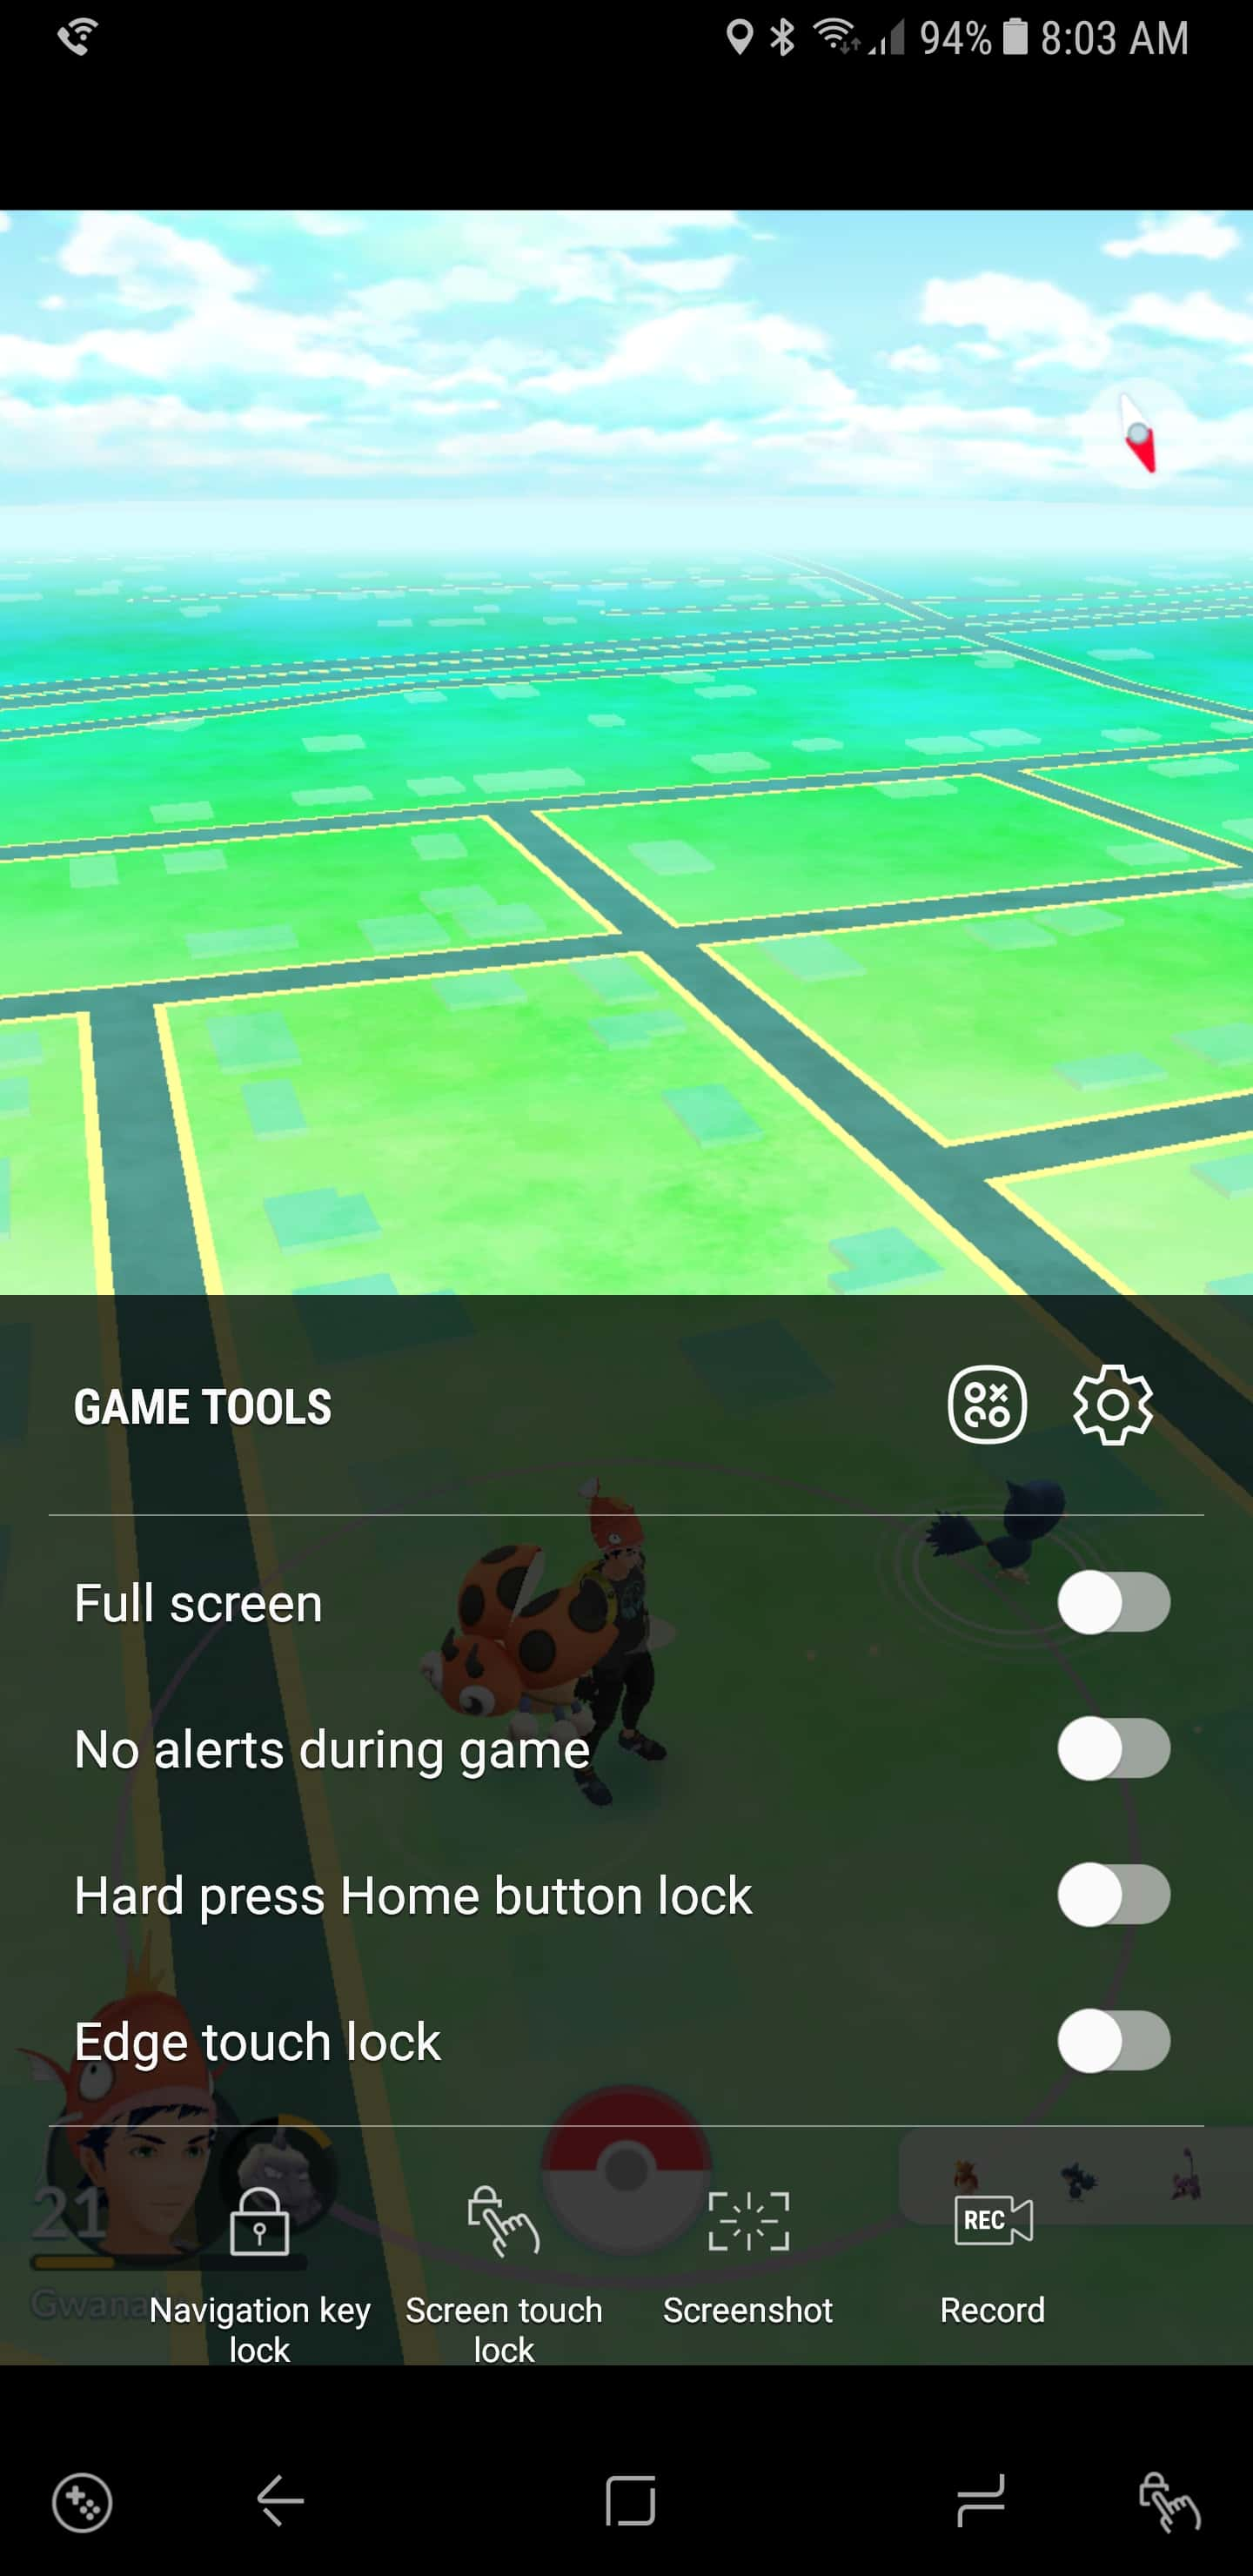 Samsung Galaxy Note 8 AH NS Screenshots game tools